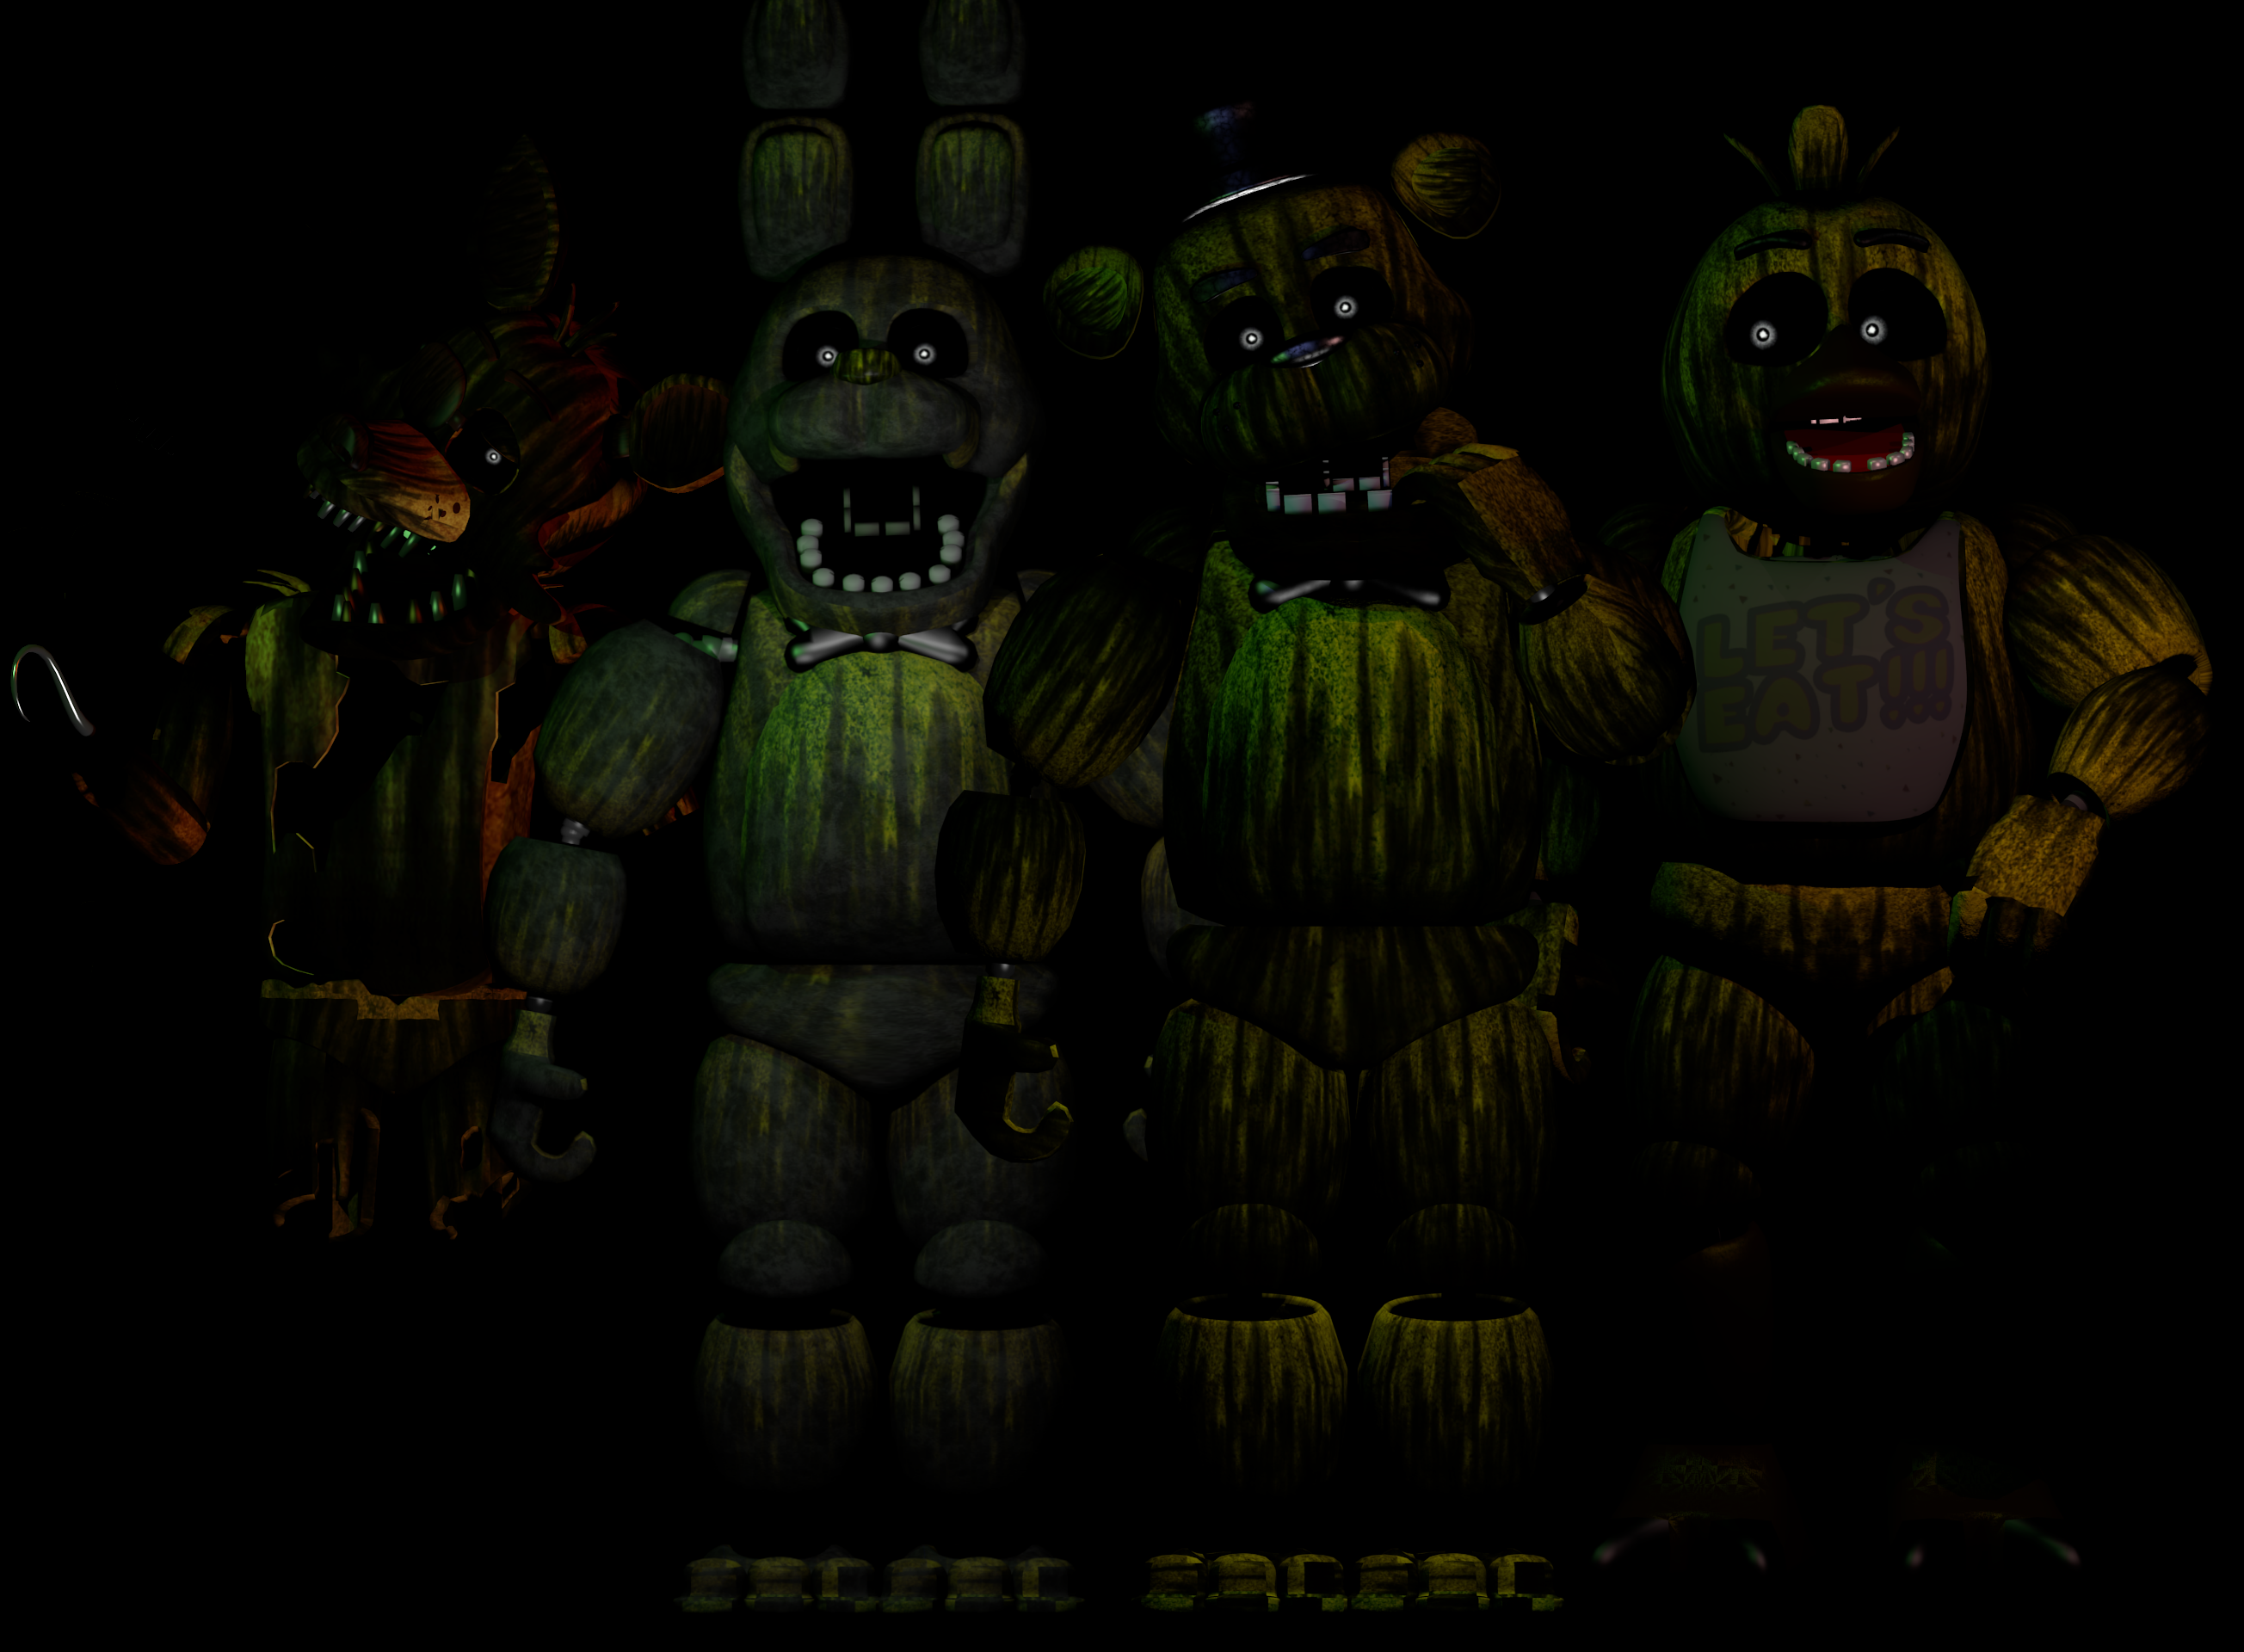 Fnaf 3 Characters Www Pixshark Com Images Galleries